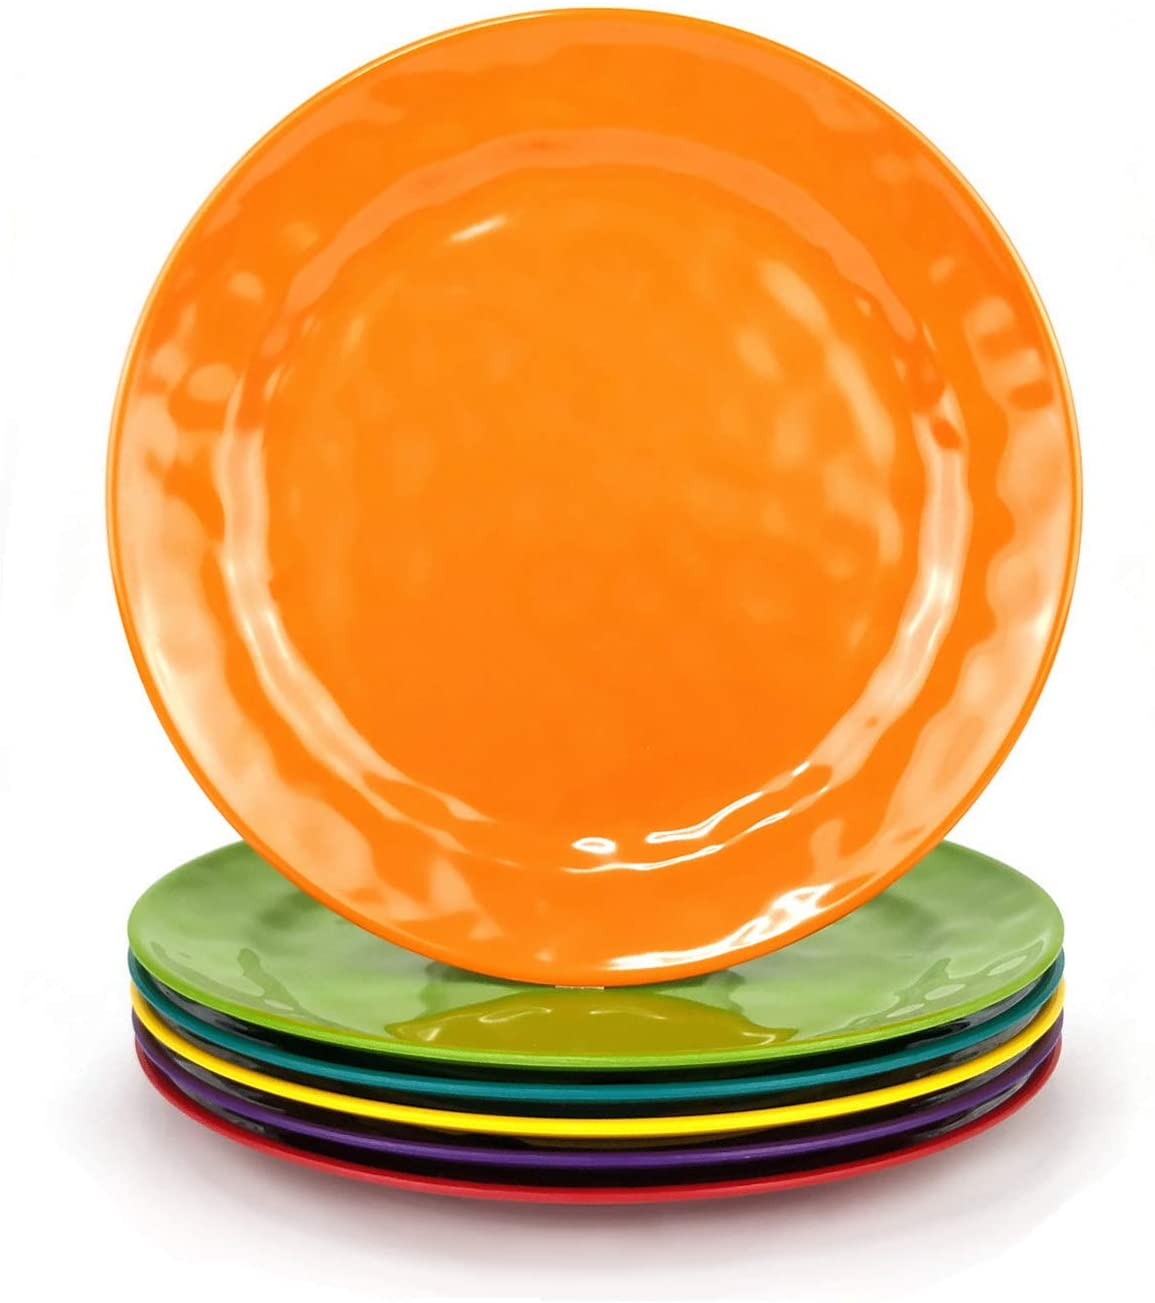 Melamine Plates Set of 6, 8-inch 100% Melamine Salad Plates for Everyday Use, Break-resistant and Lightweight , Multicolor